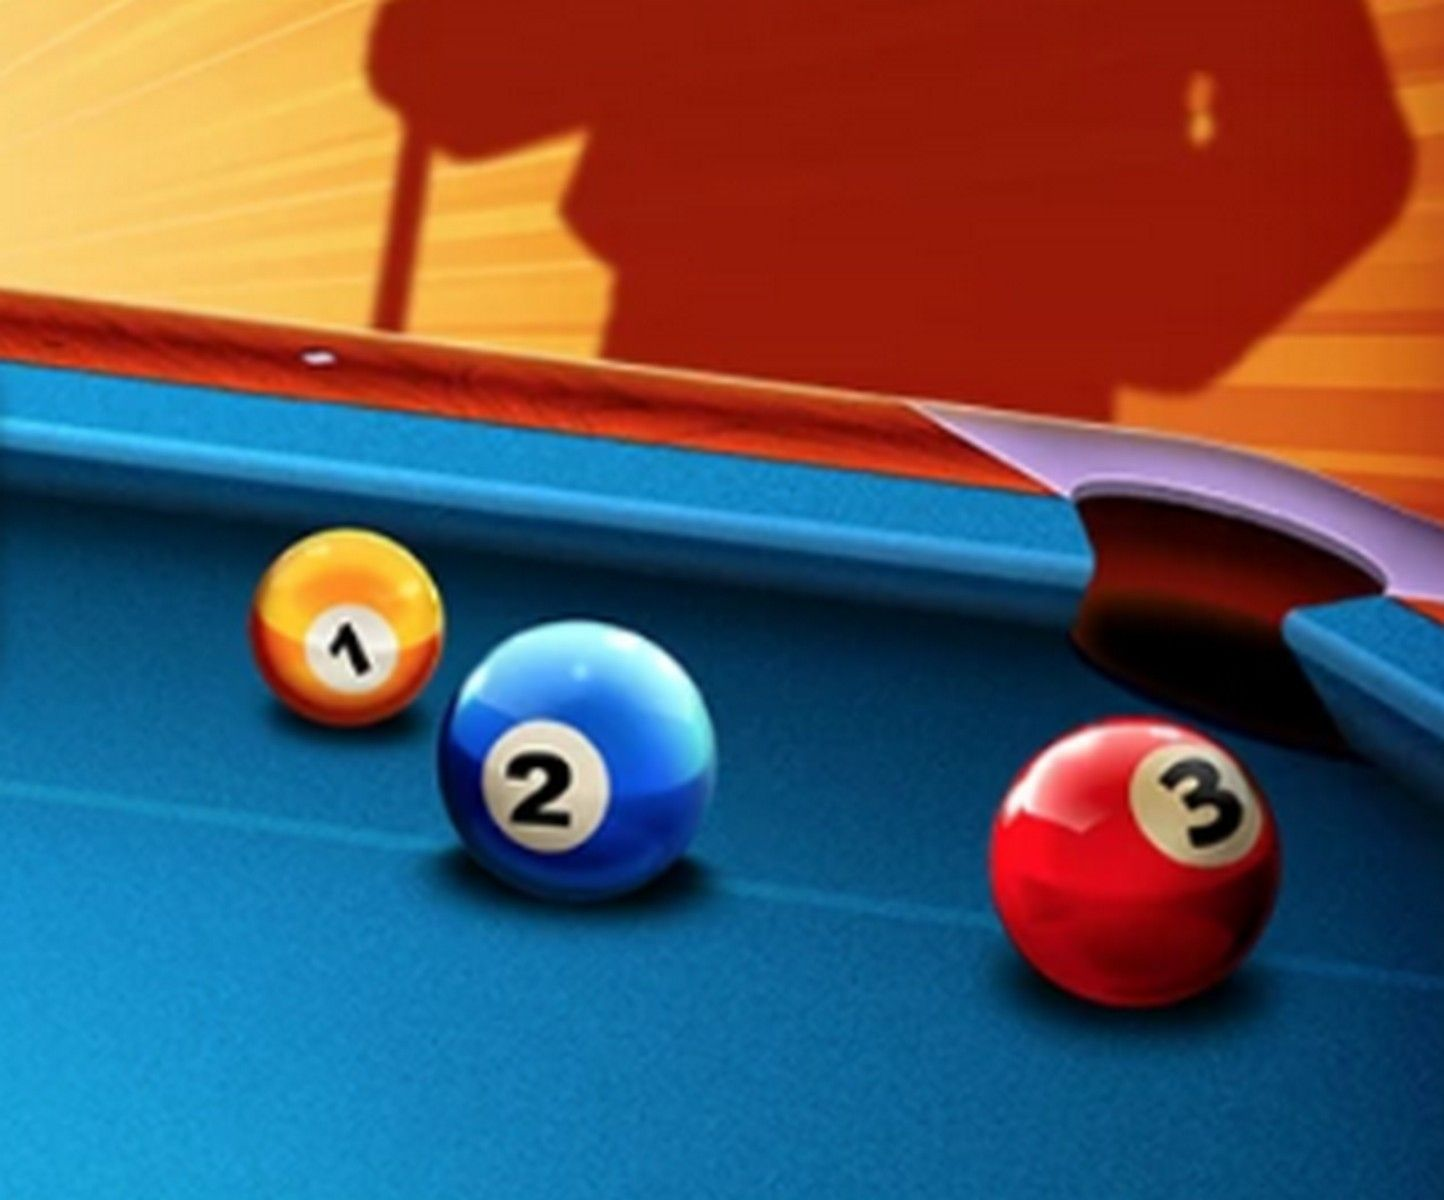 New 8 Ball Pool | berlin | Snooker games, Pool games, Cool